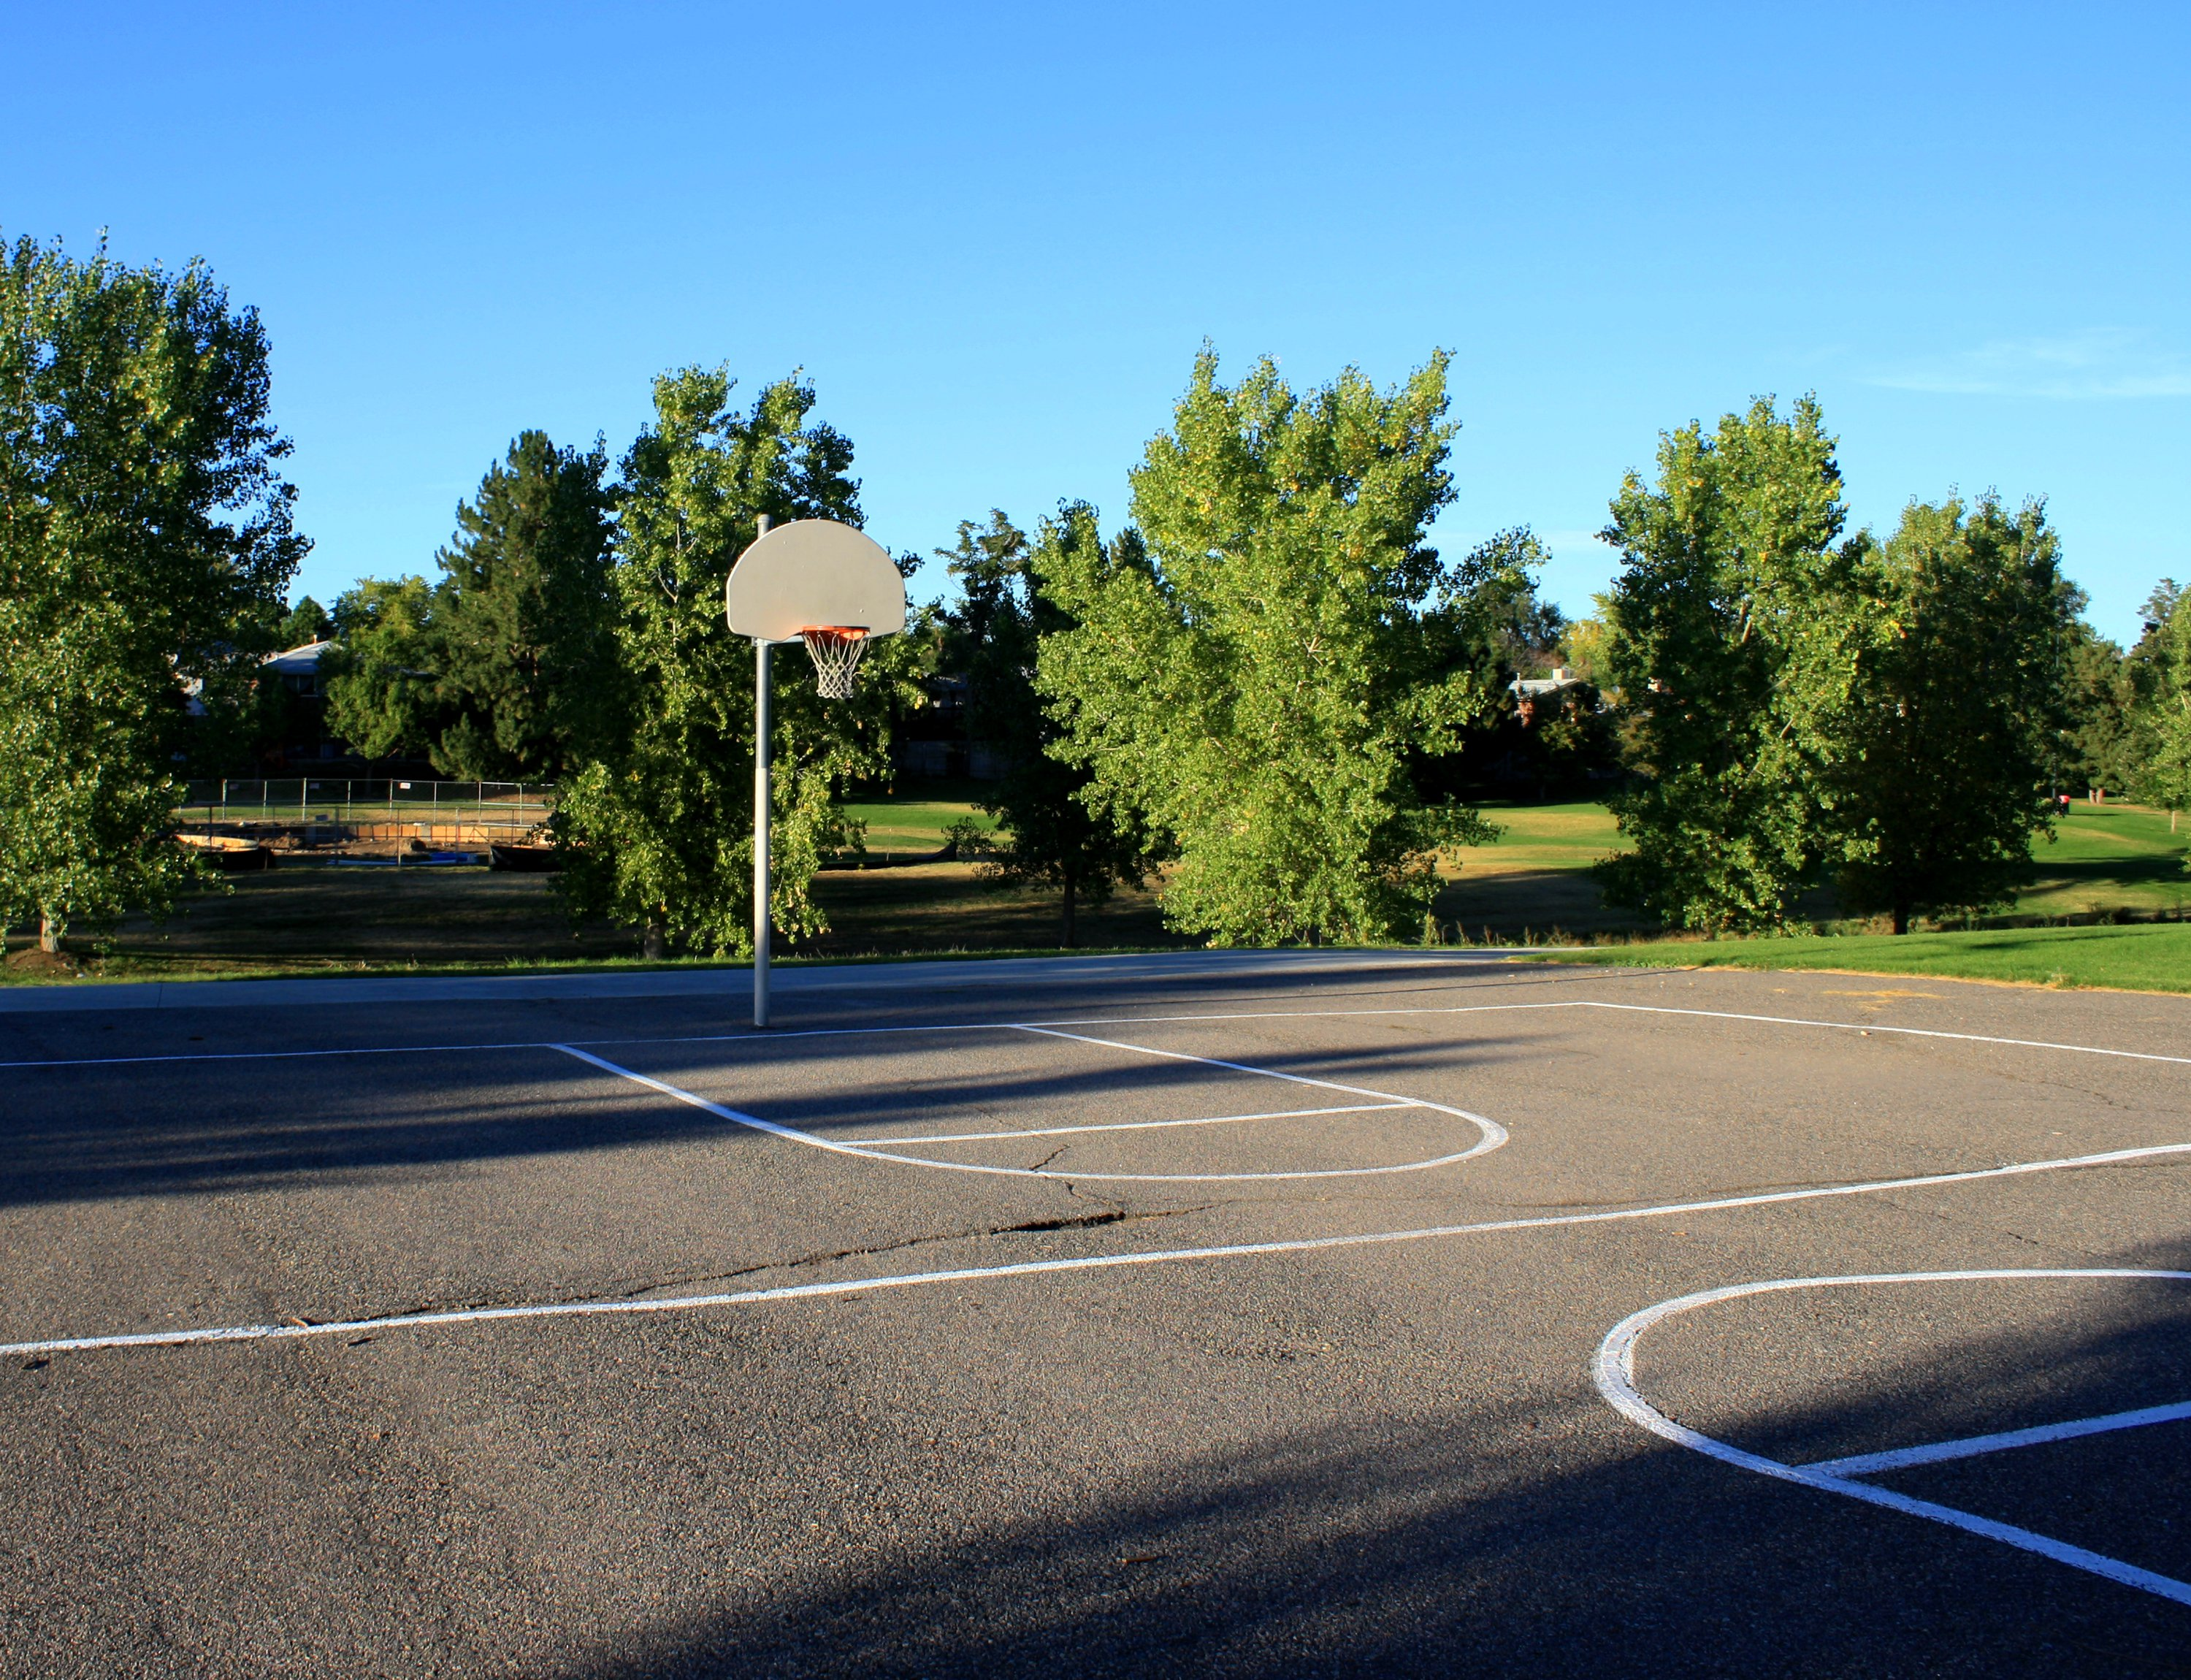 Outdoor Basketball Court Picture.